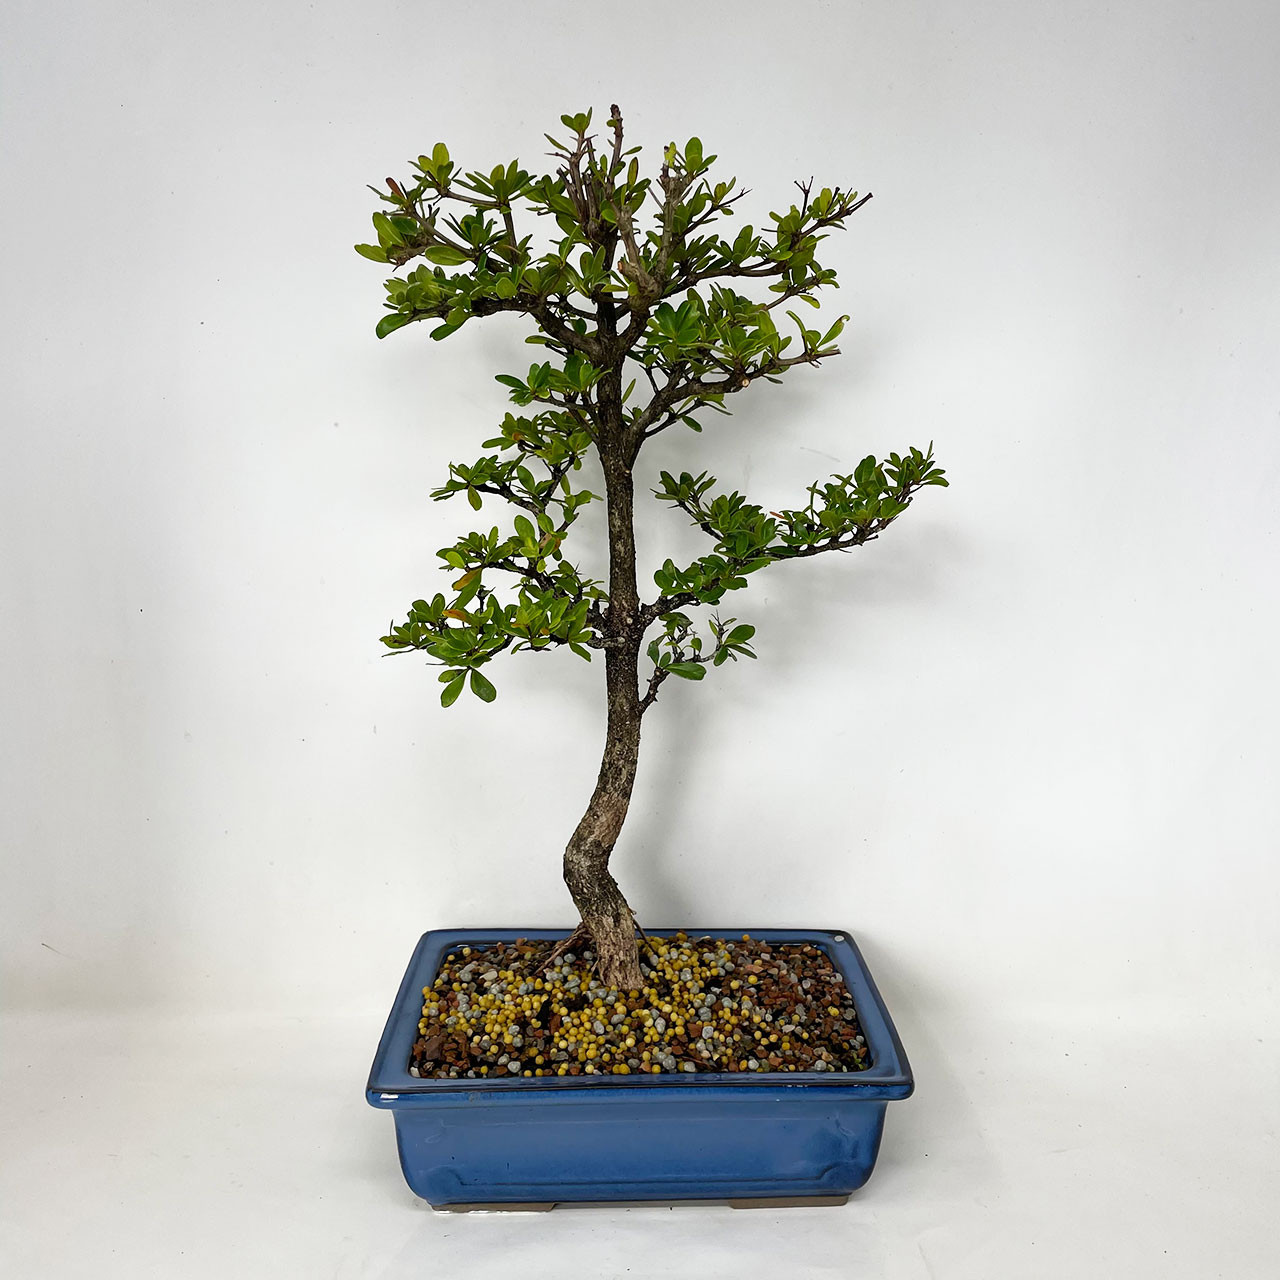 Black Olive Bonsai Tree Bonsai Outlet Tweblbo 04